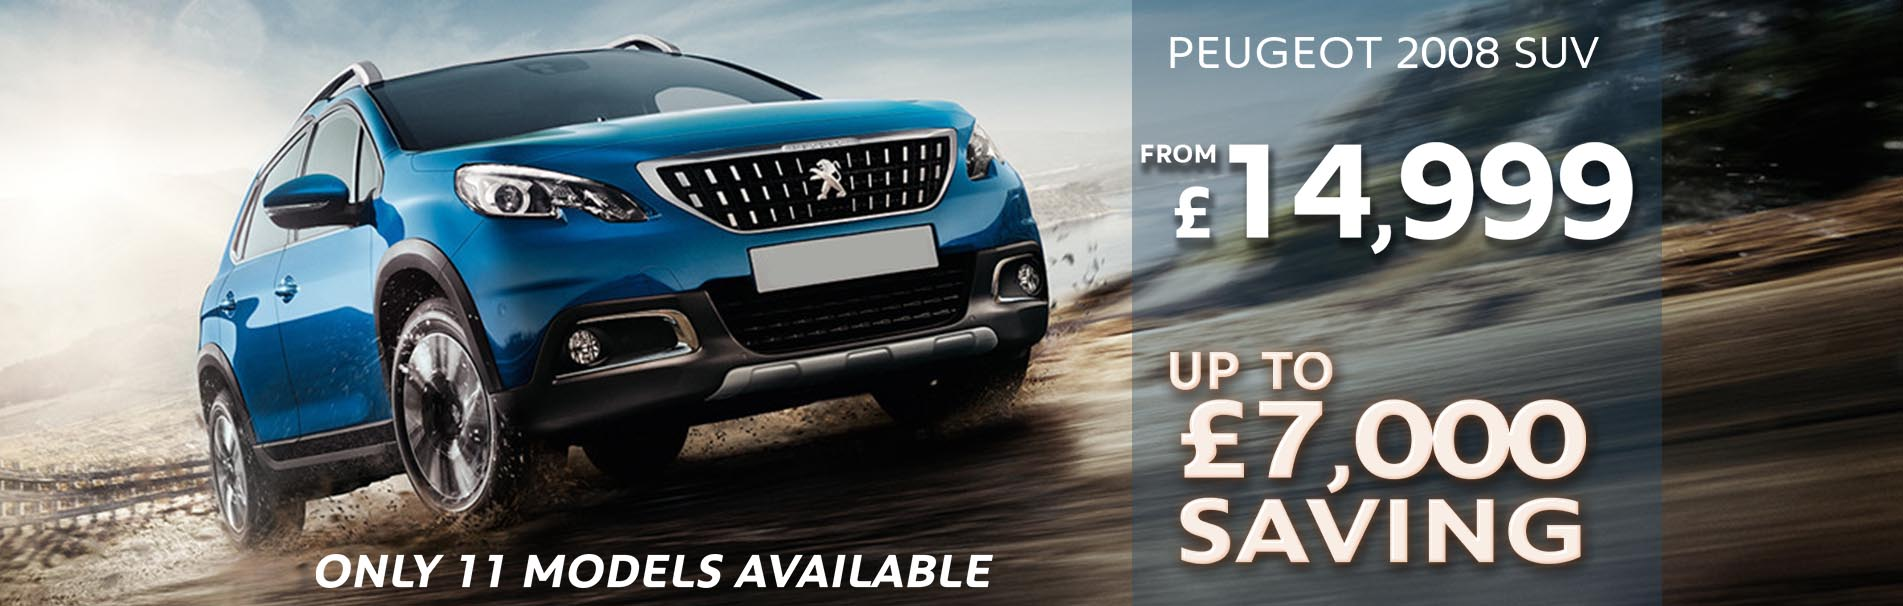 peugeot-2008-up-to-7000-pounds-cash-price-discounts-sli